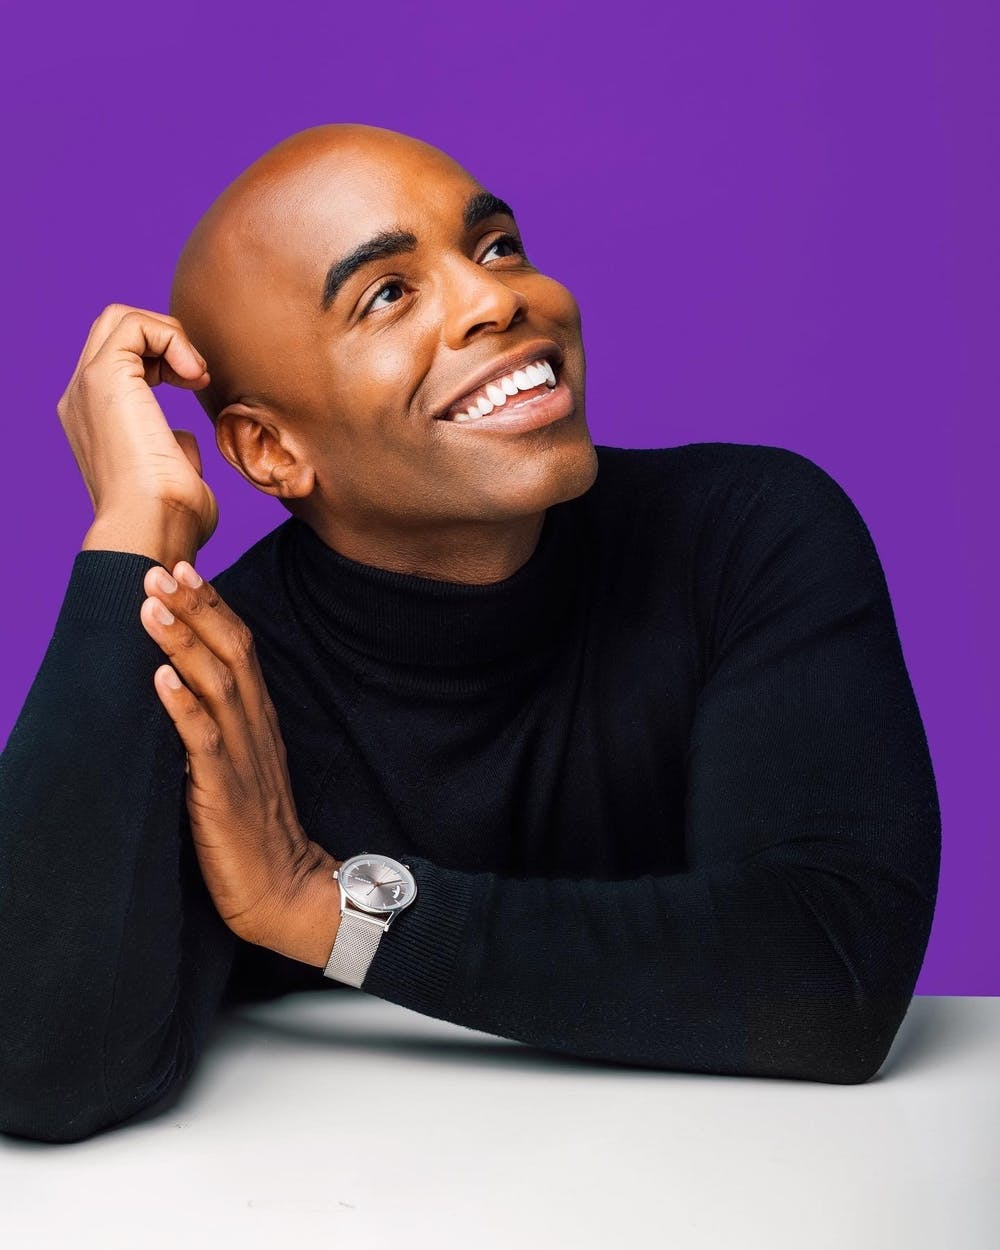 Chris Witherspoon to be keynote speaker at OU Pride Graduation